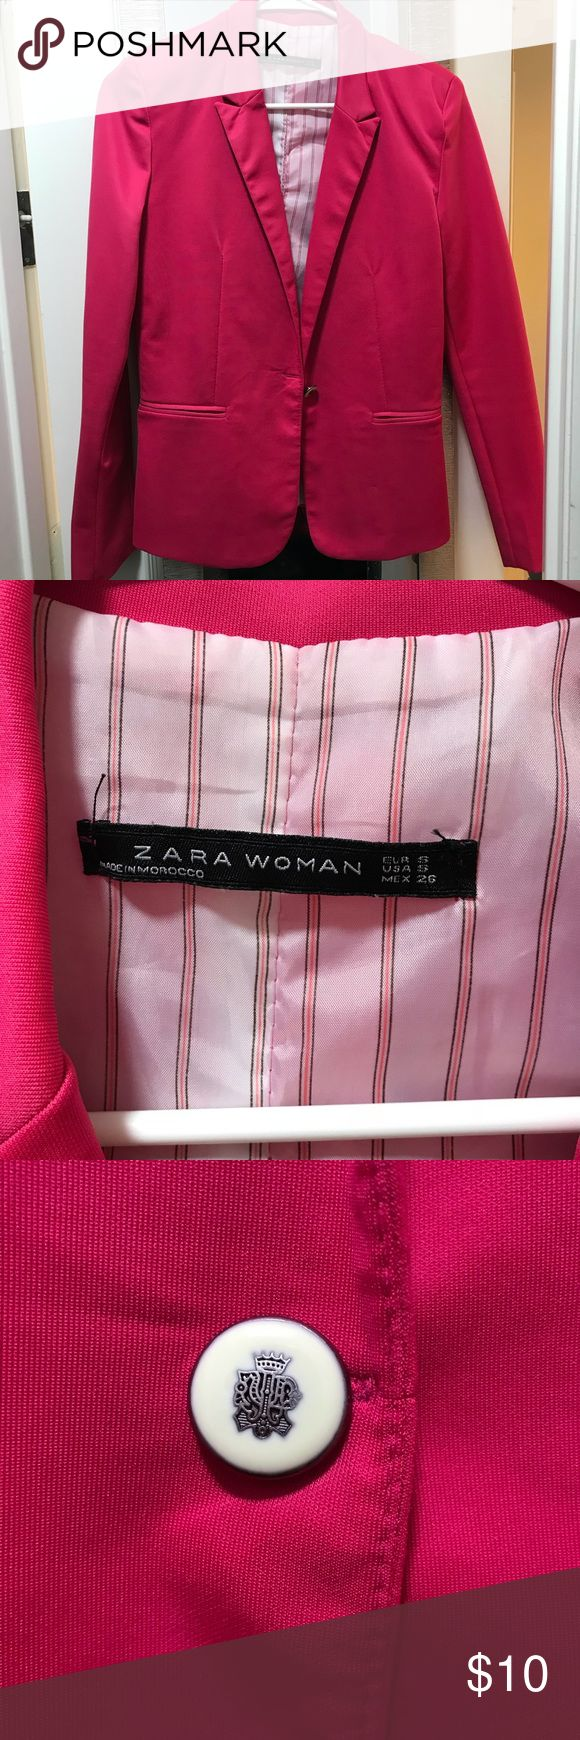 Zara Woman Blazer Zara Woman got pink blazer💗 Such a statement piece! Perfect for work or brunch with the ladies. A few small picks but overall in good (barely) used condition. Zara Jackets & Coats Blazers